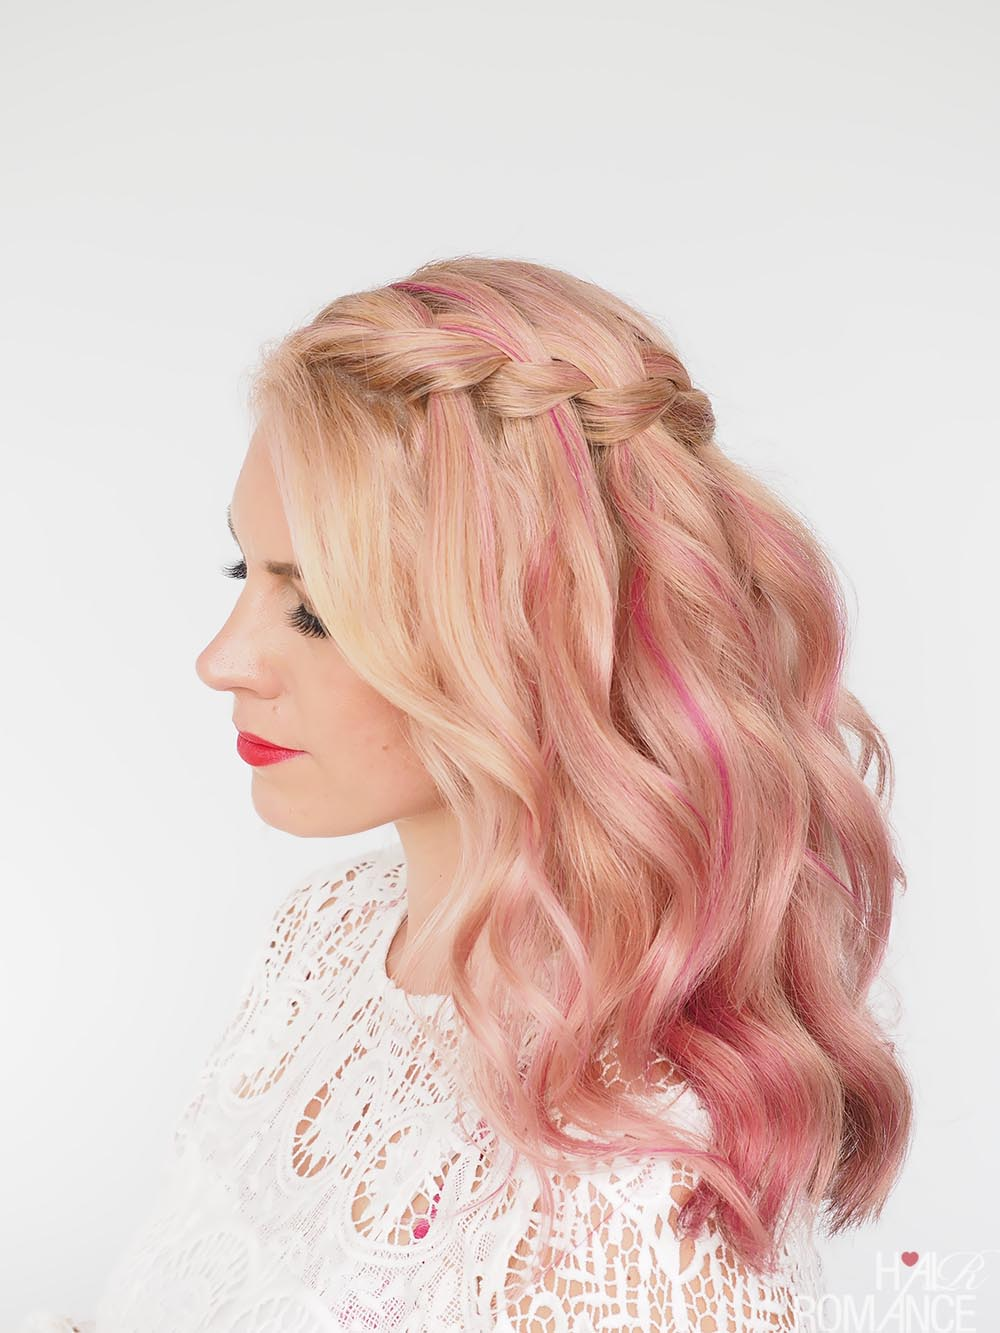 Waterfall braid in pink hair by Hair Romance